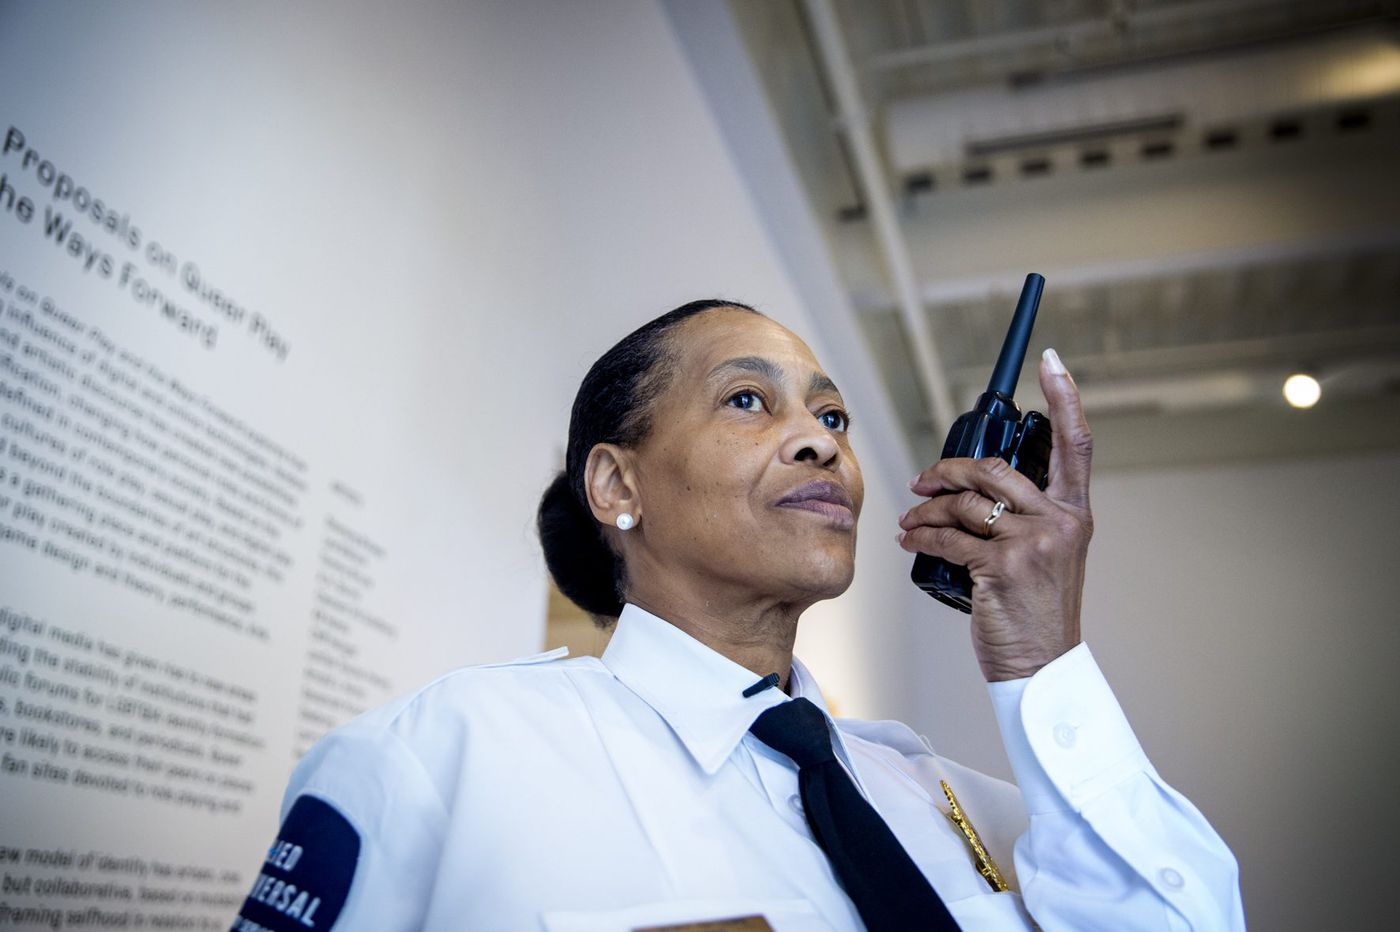 Grandma guards risqué exhibits at Penn's Institute of Contemporary Art | We the People